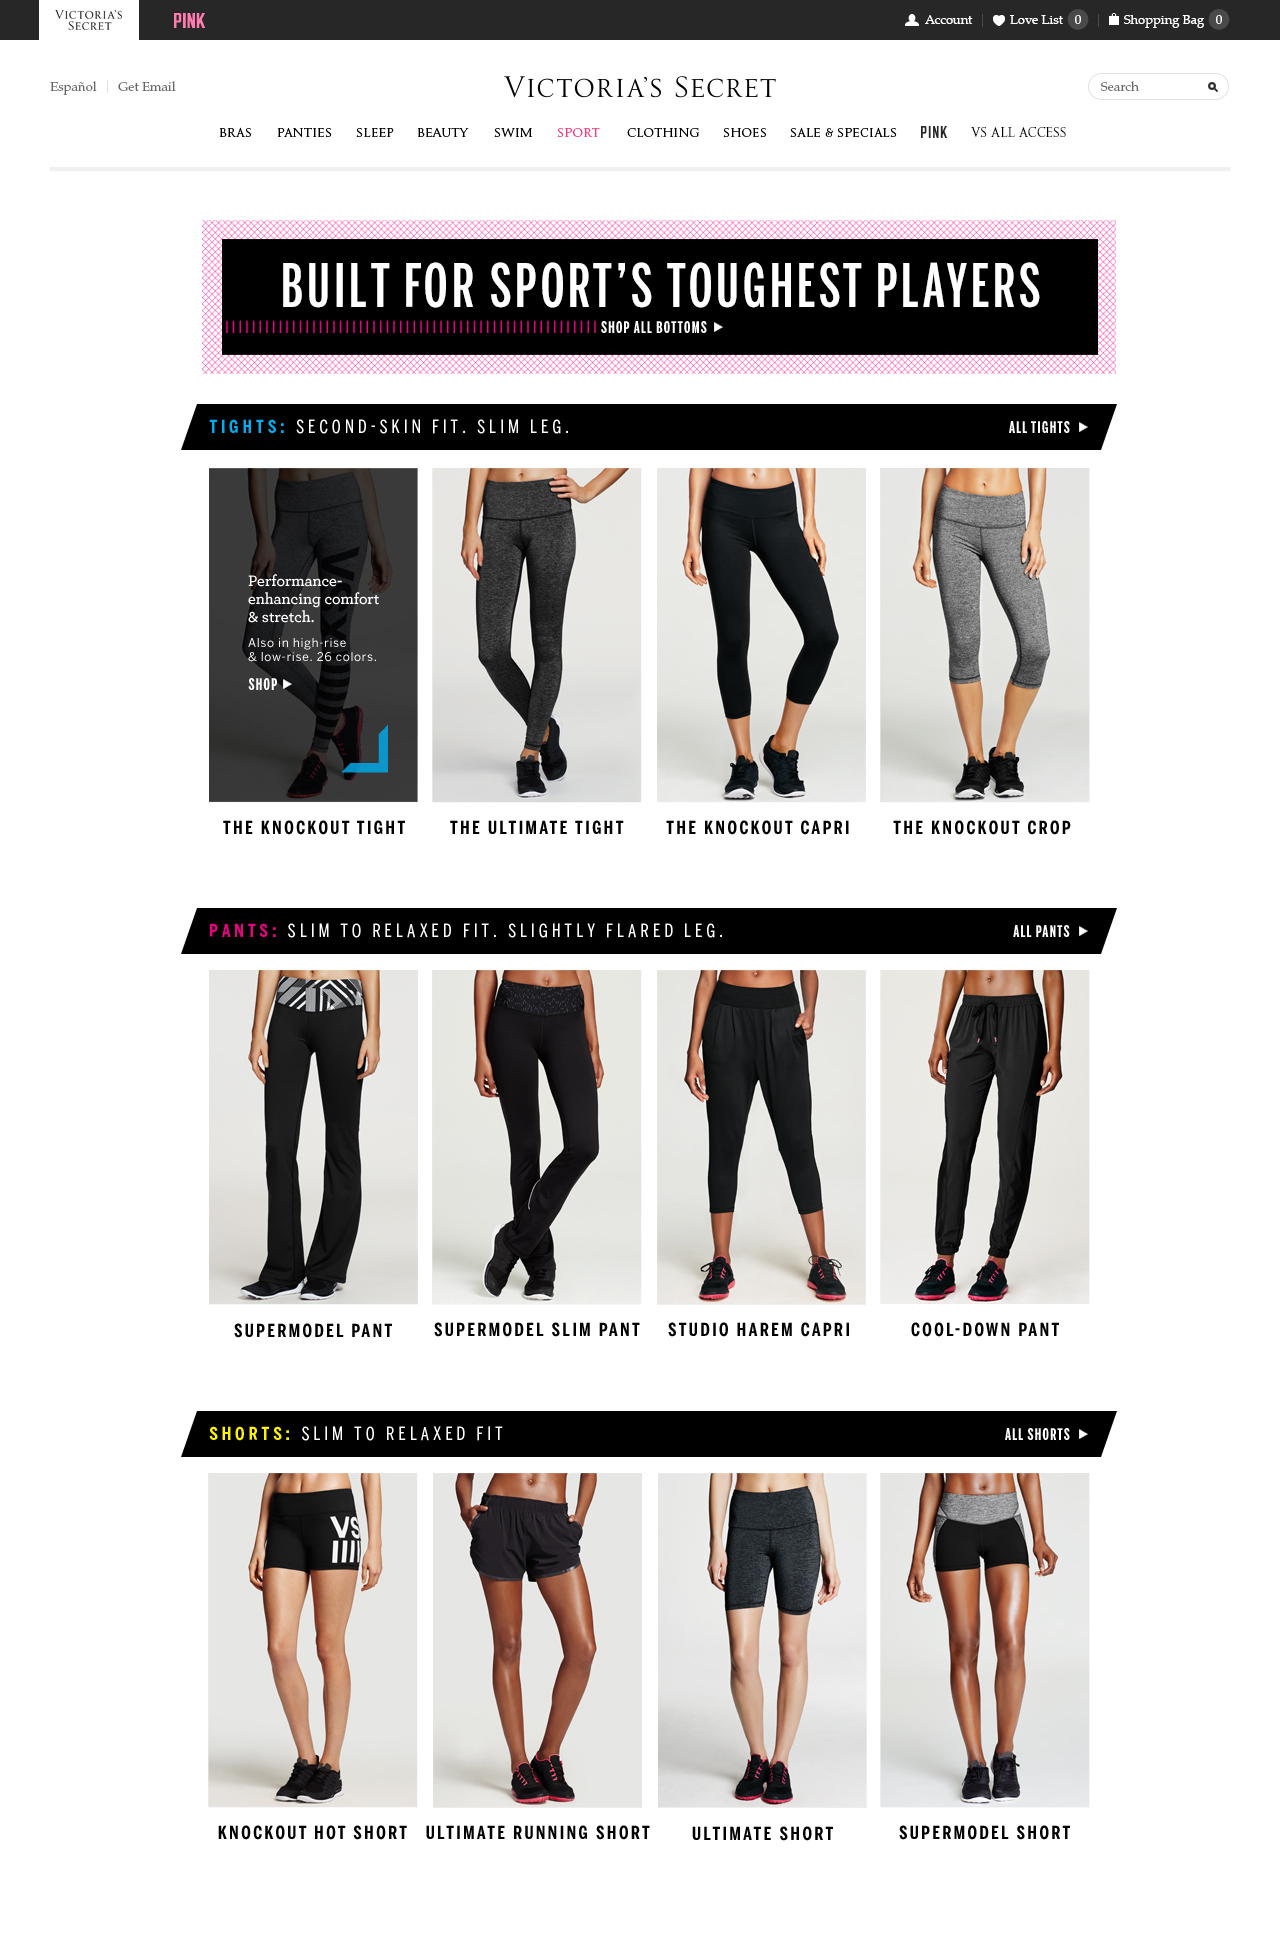 BOS_Work_VSD_012215-sport-performance-bottoms-overlay.jpg